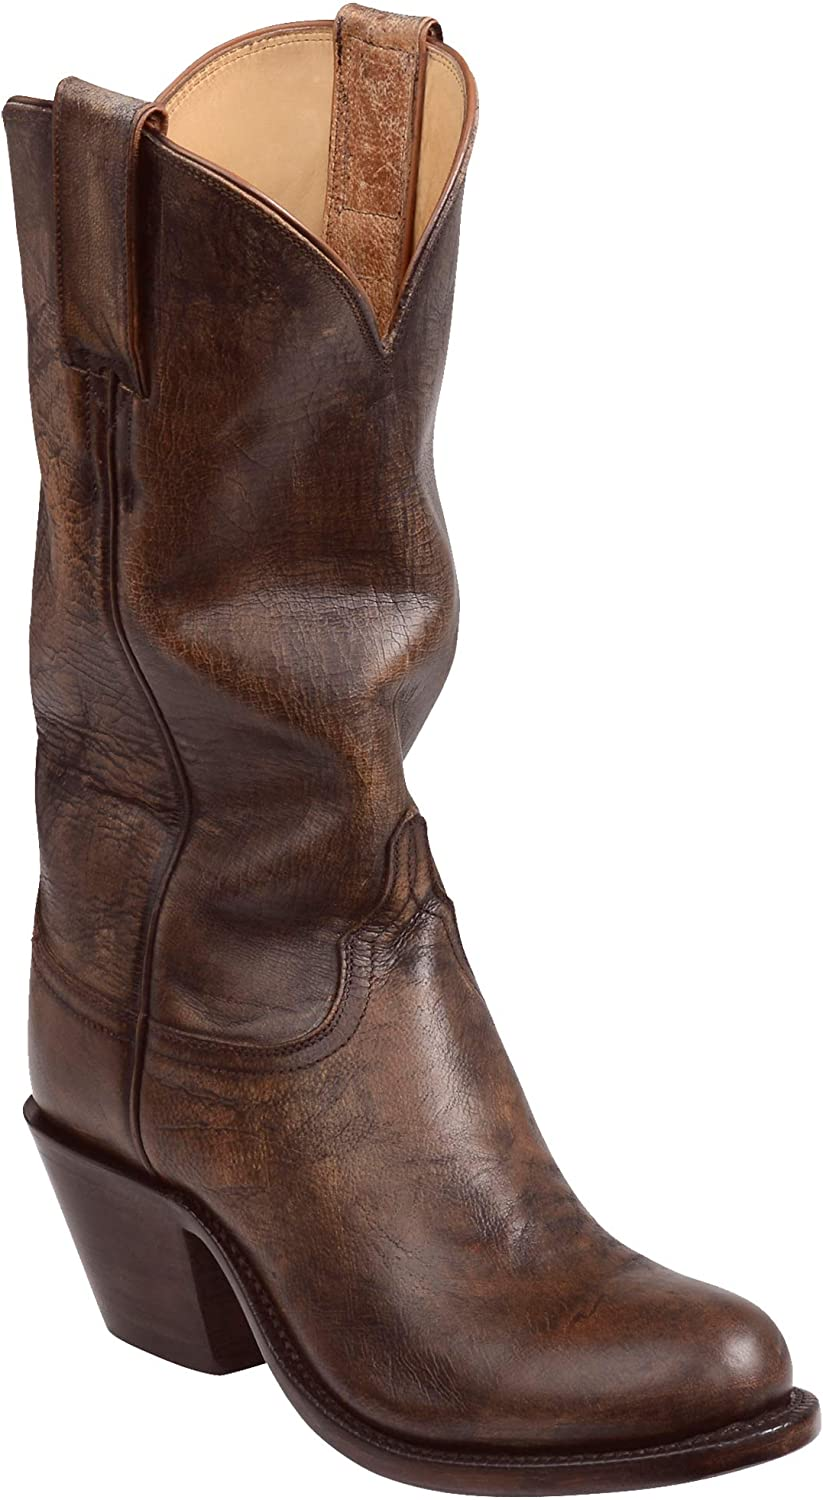 Lucchese Womens Britton Goat Round Toe Boots Mid Calf Mid Heel 2-3